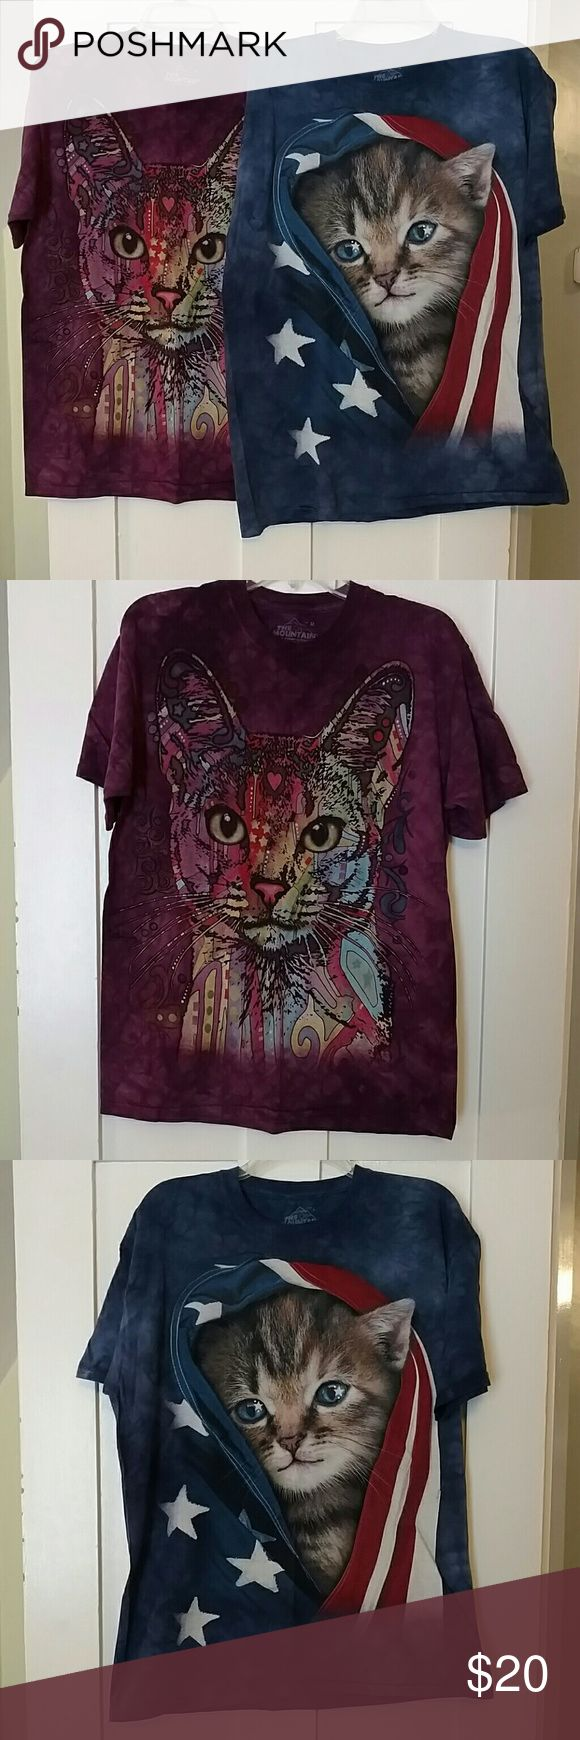 The Mountain Tie-dye Cat Shirts (bundle) Kind of ridiculous, but if you or a friend are a true cat lady, these are must-have tees. ??  Purple shirt size L, design by artist Dean Russo for Russo Rescue Collection partnership. (Orig $25)  Blue shirt size M, Patriotic Kitten. (Orig $22)  Tees printed by The Mountain, based in Keene NH, creator of the iconic Three Wolf Moon tee. Dyed using organic dyes with designs printed with soft, non-toxic water-based inks.  In great shape. Can be split up…